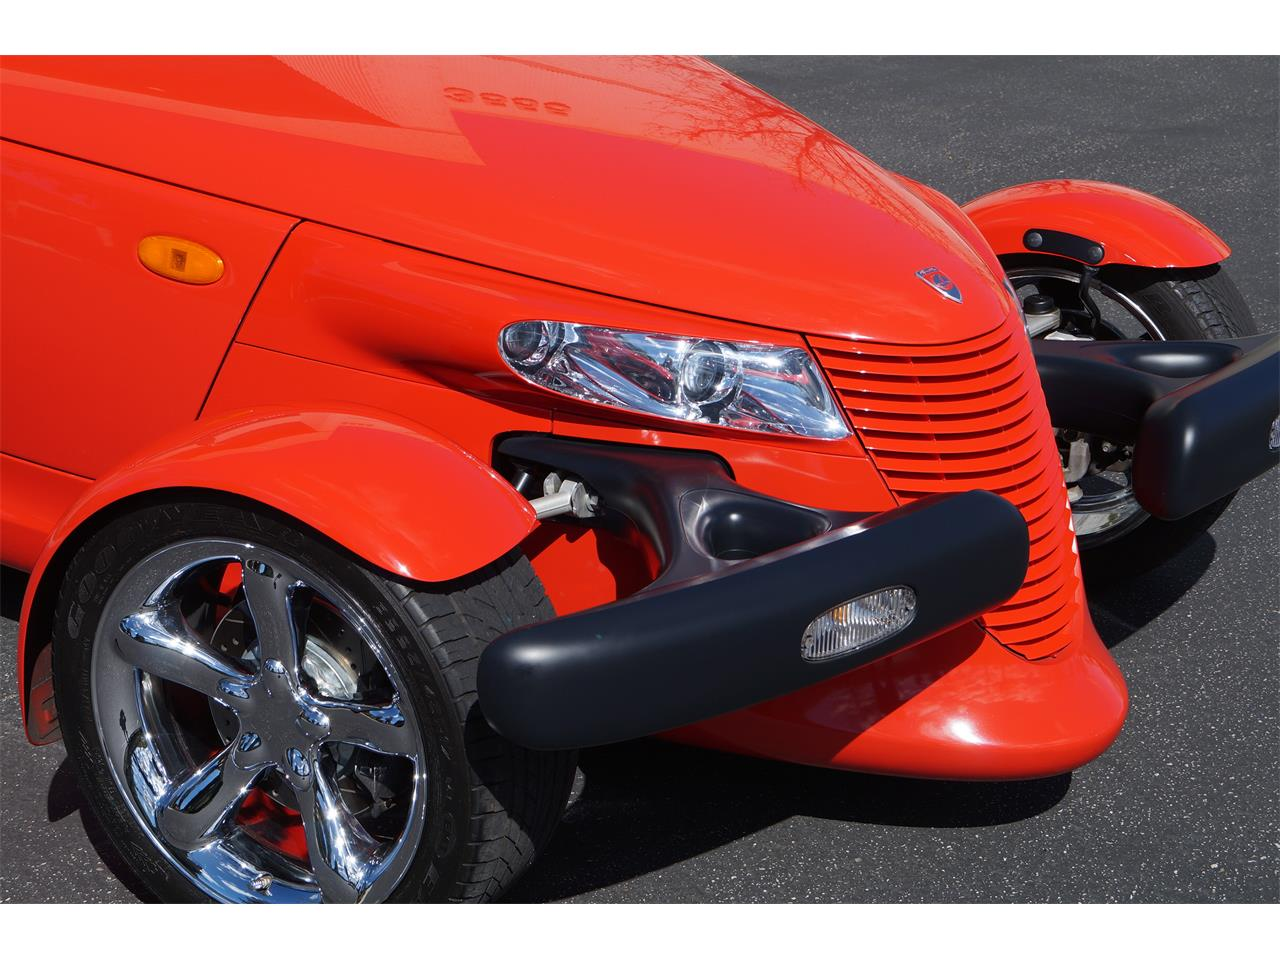 2000 Plymouth Prowler for sale in Thousand Oaks, CA – photo 38